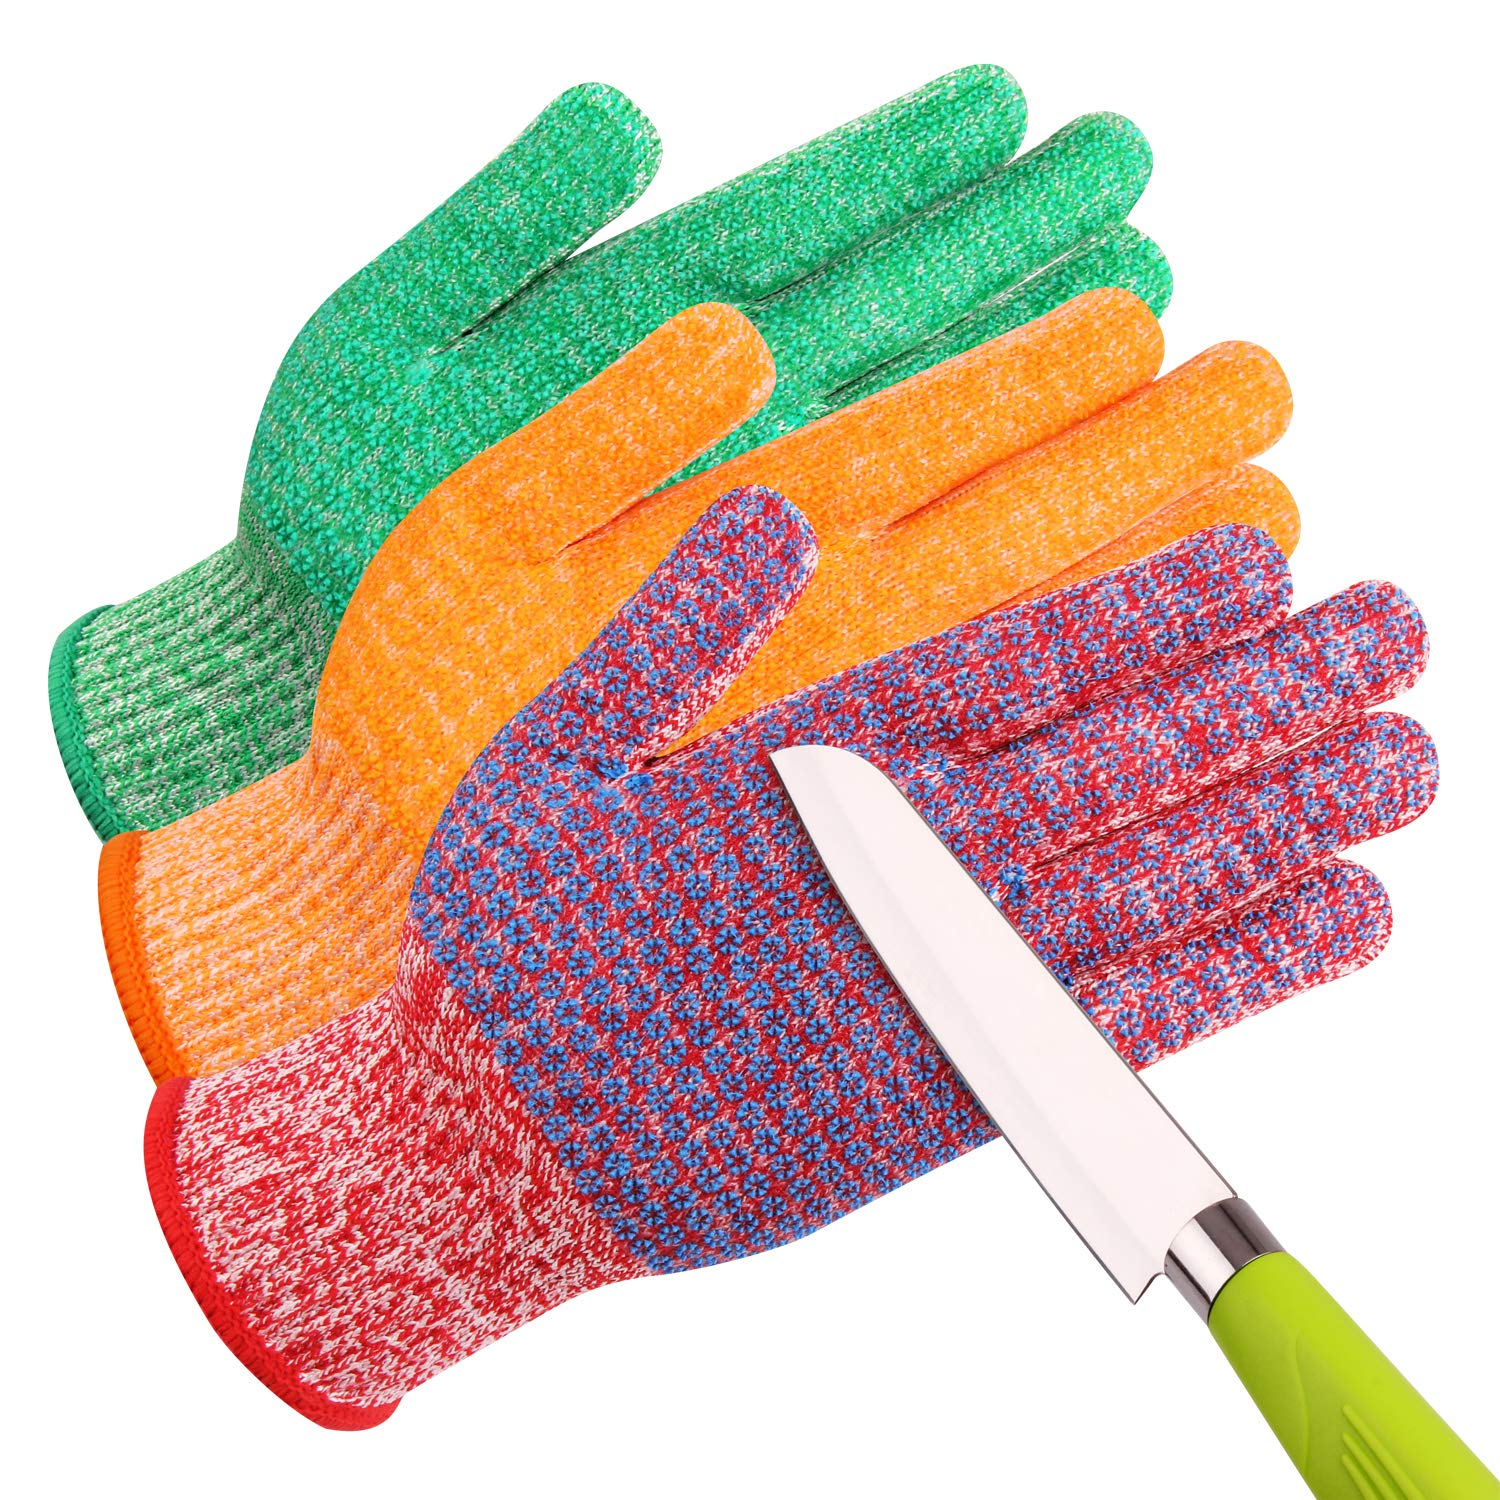 JH C0224LA Cut Resistant Gloves: 3 Color With Red For Meat, Green For Veg, Yellow For Fruit- High Performance Cut Level 5, Double Layers Silicone Coating, Food Grade No Cross Contam, 3Pairs (Large)